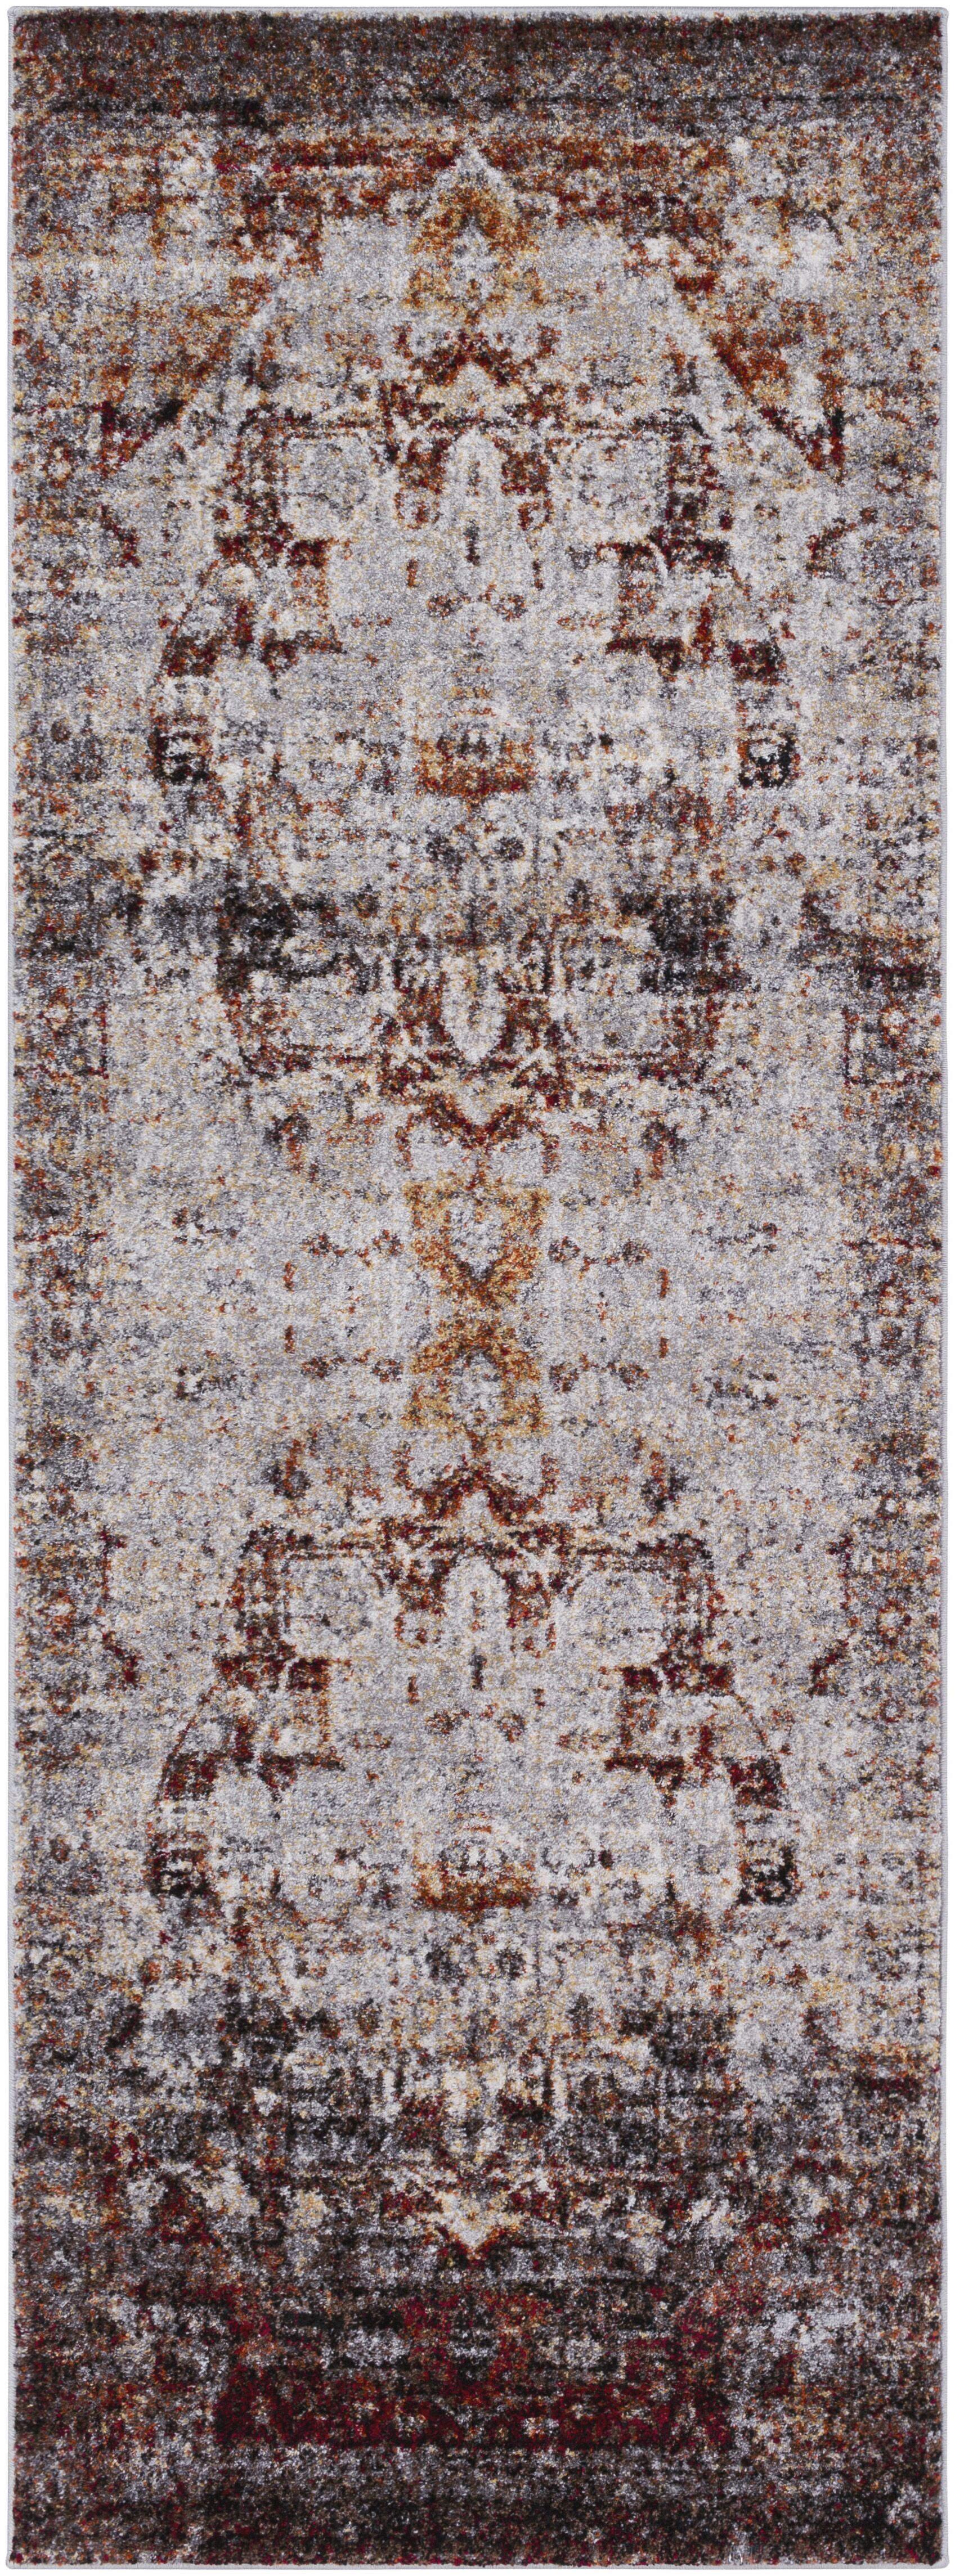 Brahim Red/Gray Area Rug Rug Size: Runner 2'7